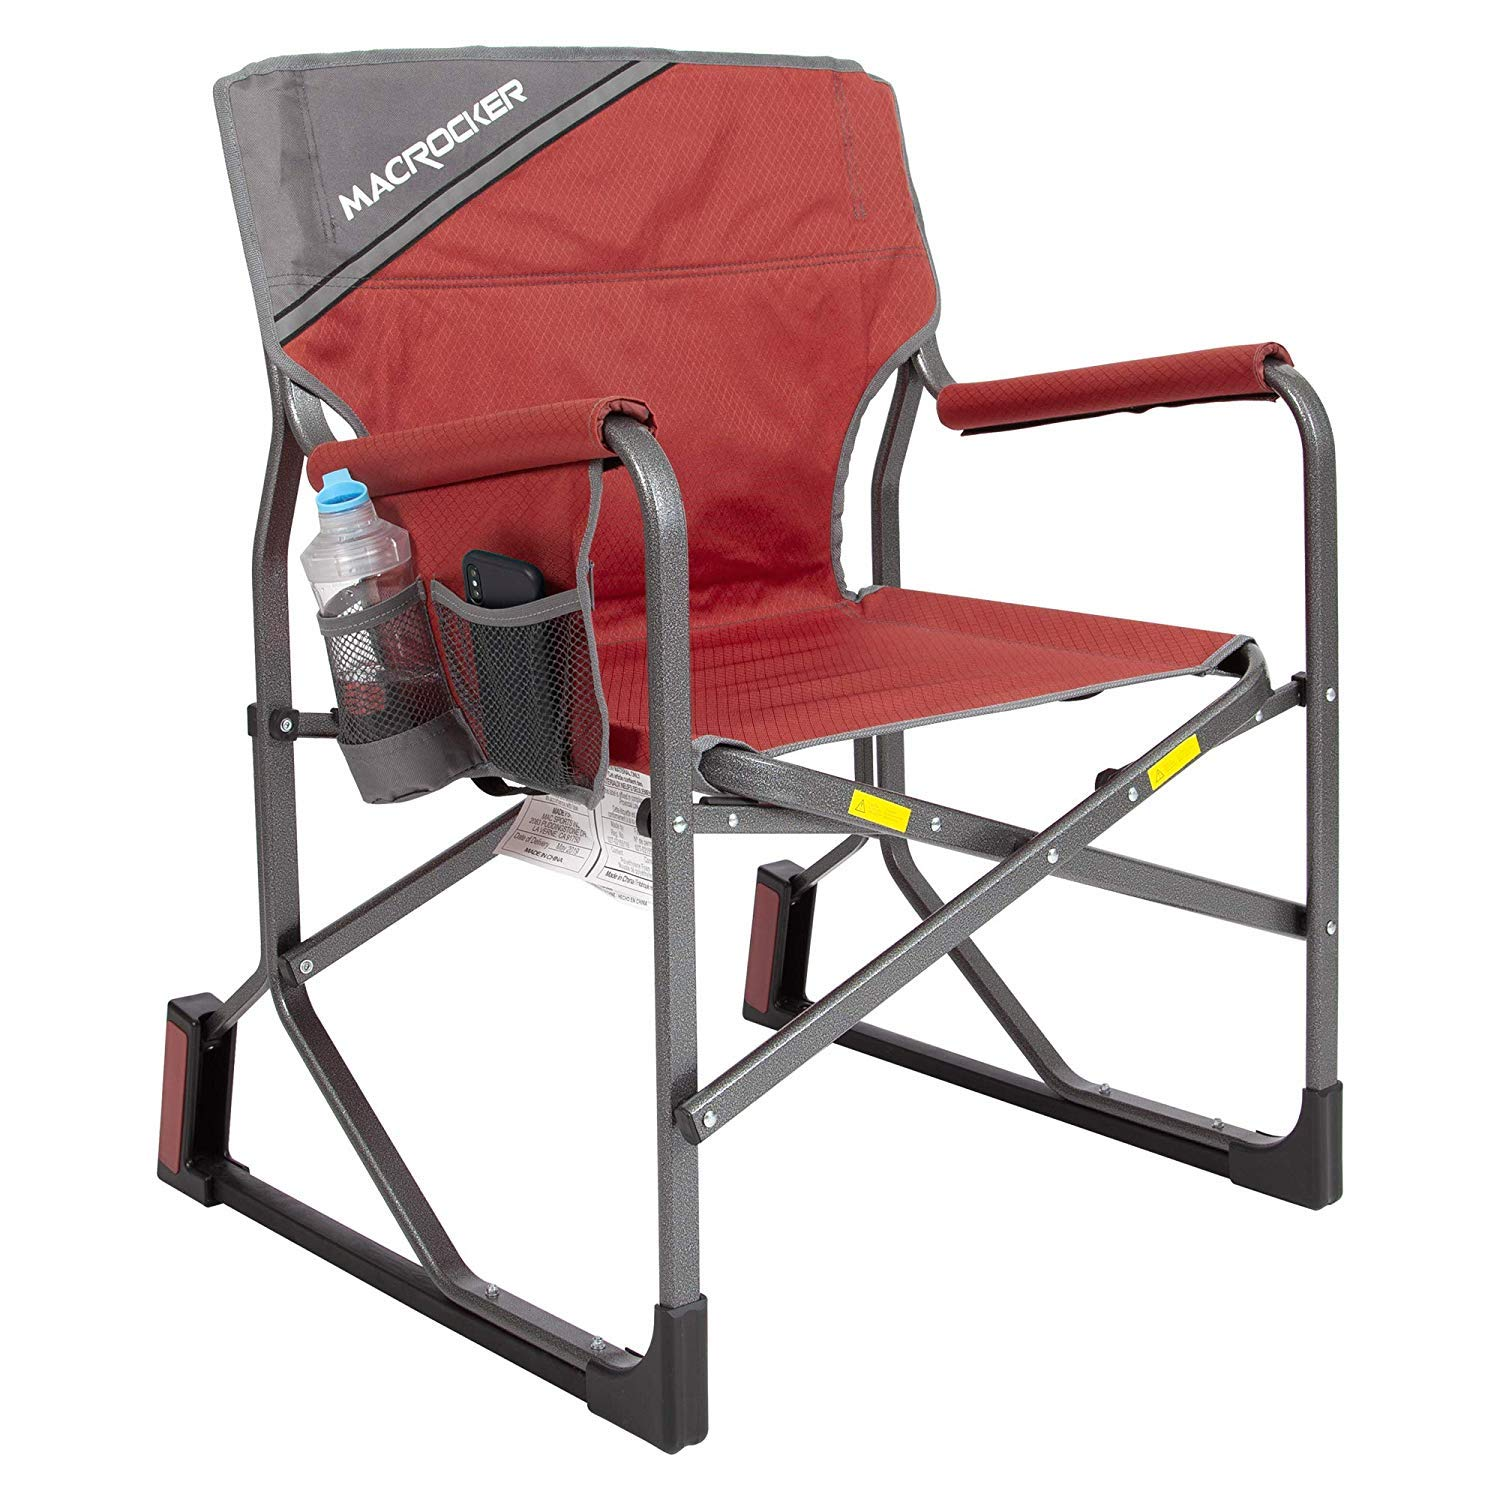 Mac Sports MacRocker Foldable Outdoor Rocking Chair - Red by Mac Sports